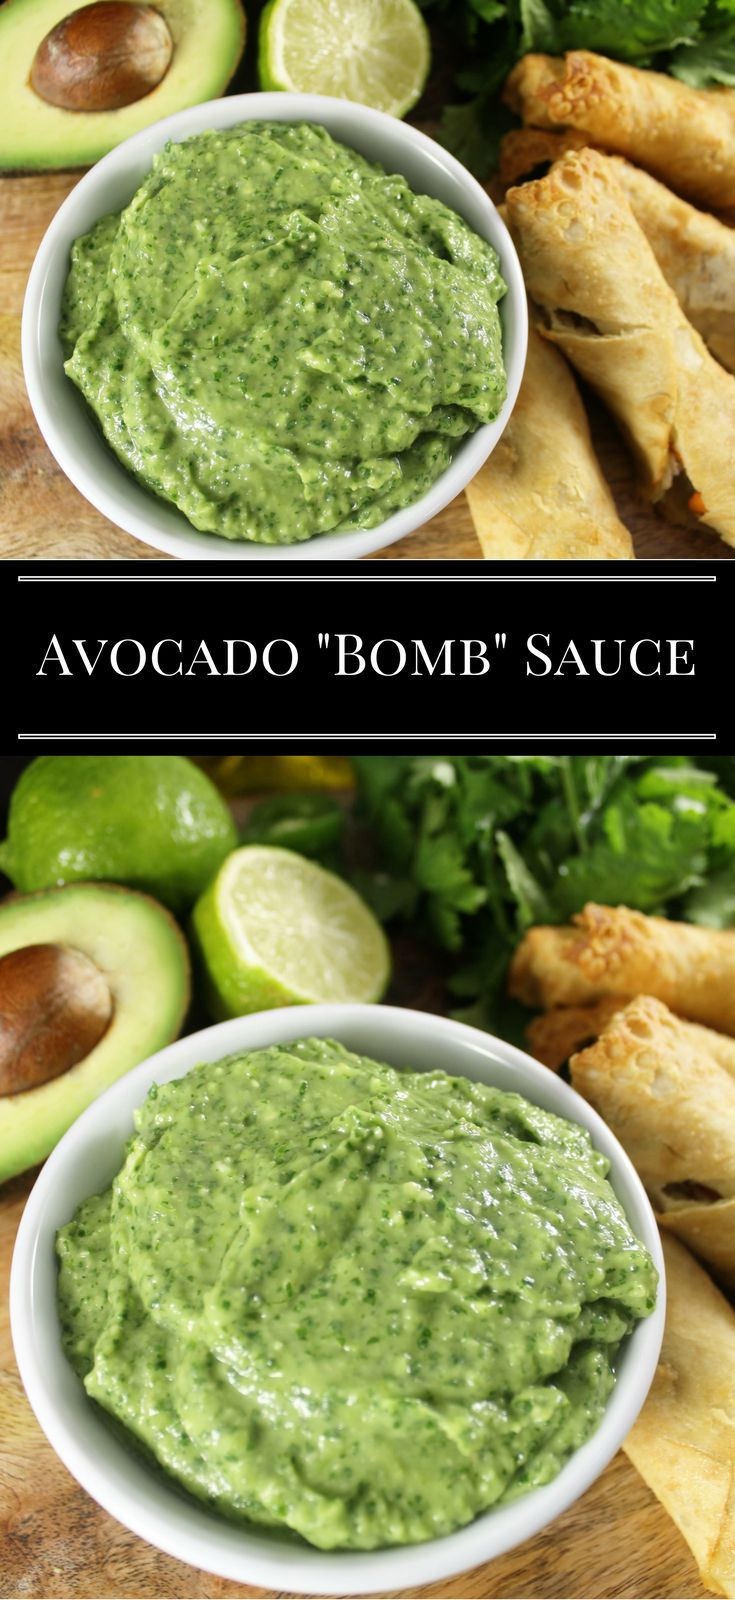 avocado-bomb-sauce More